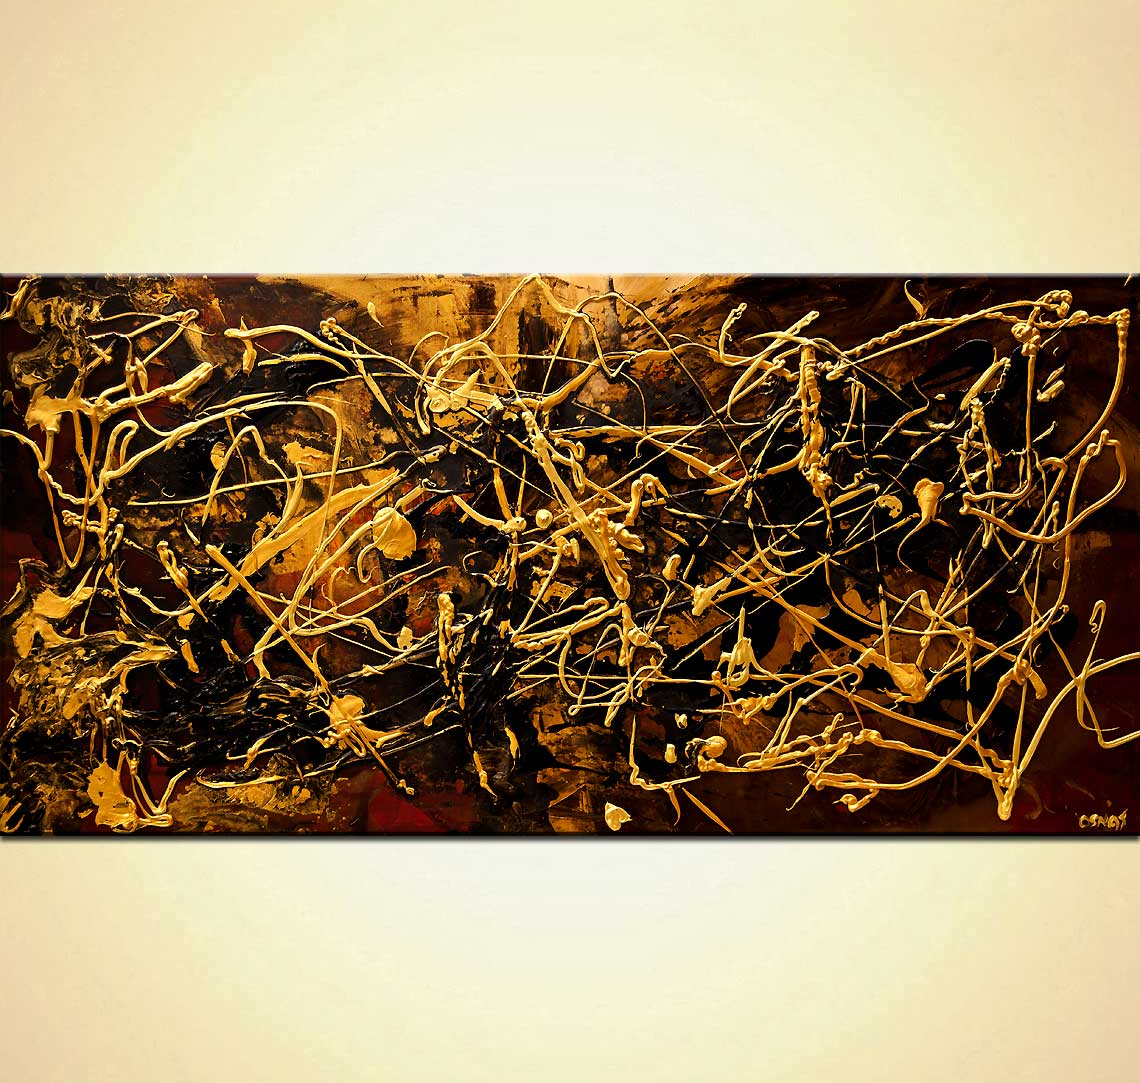 Black Gold textured abstract painting